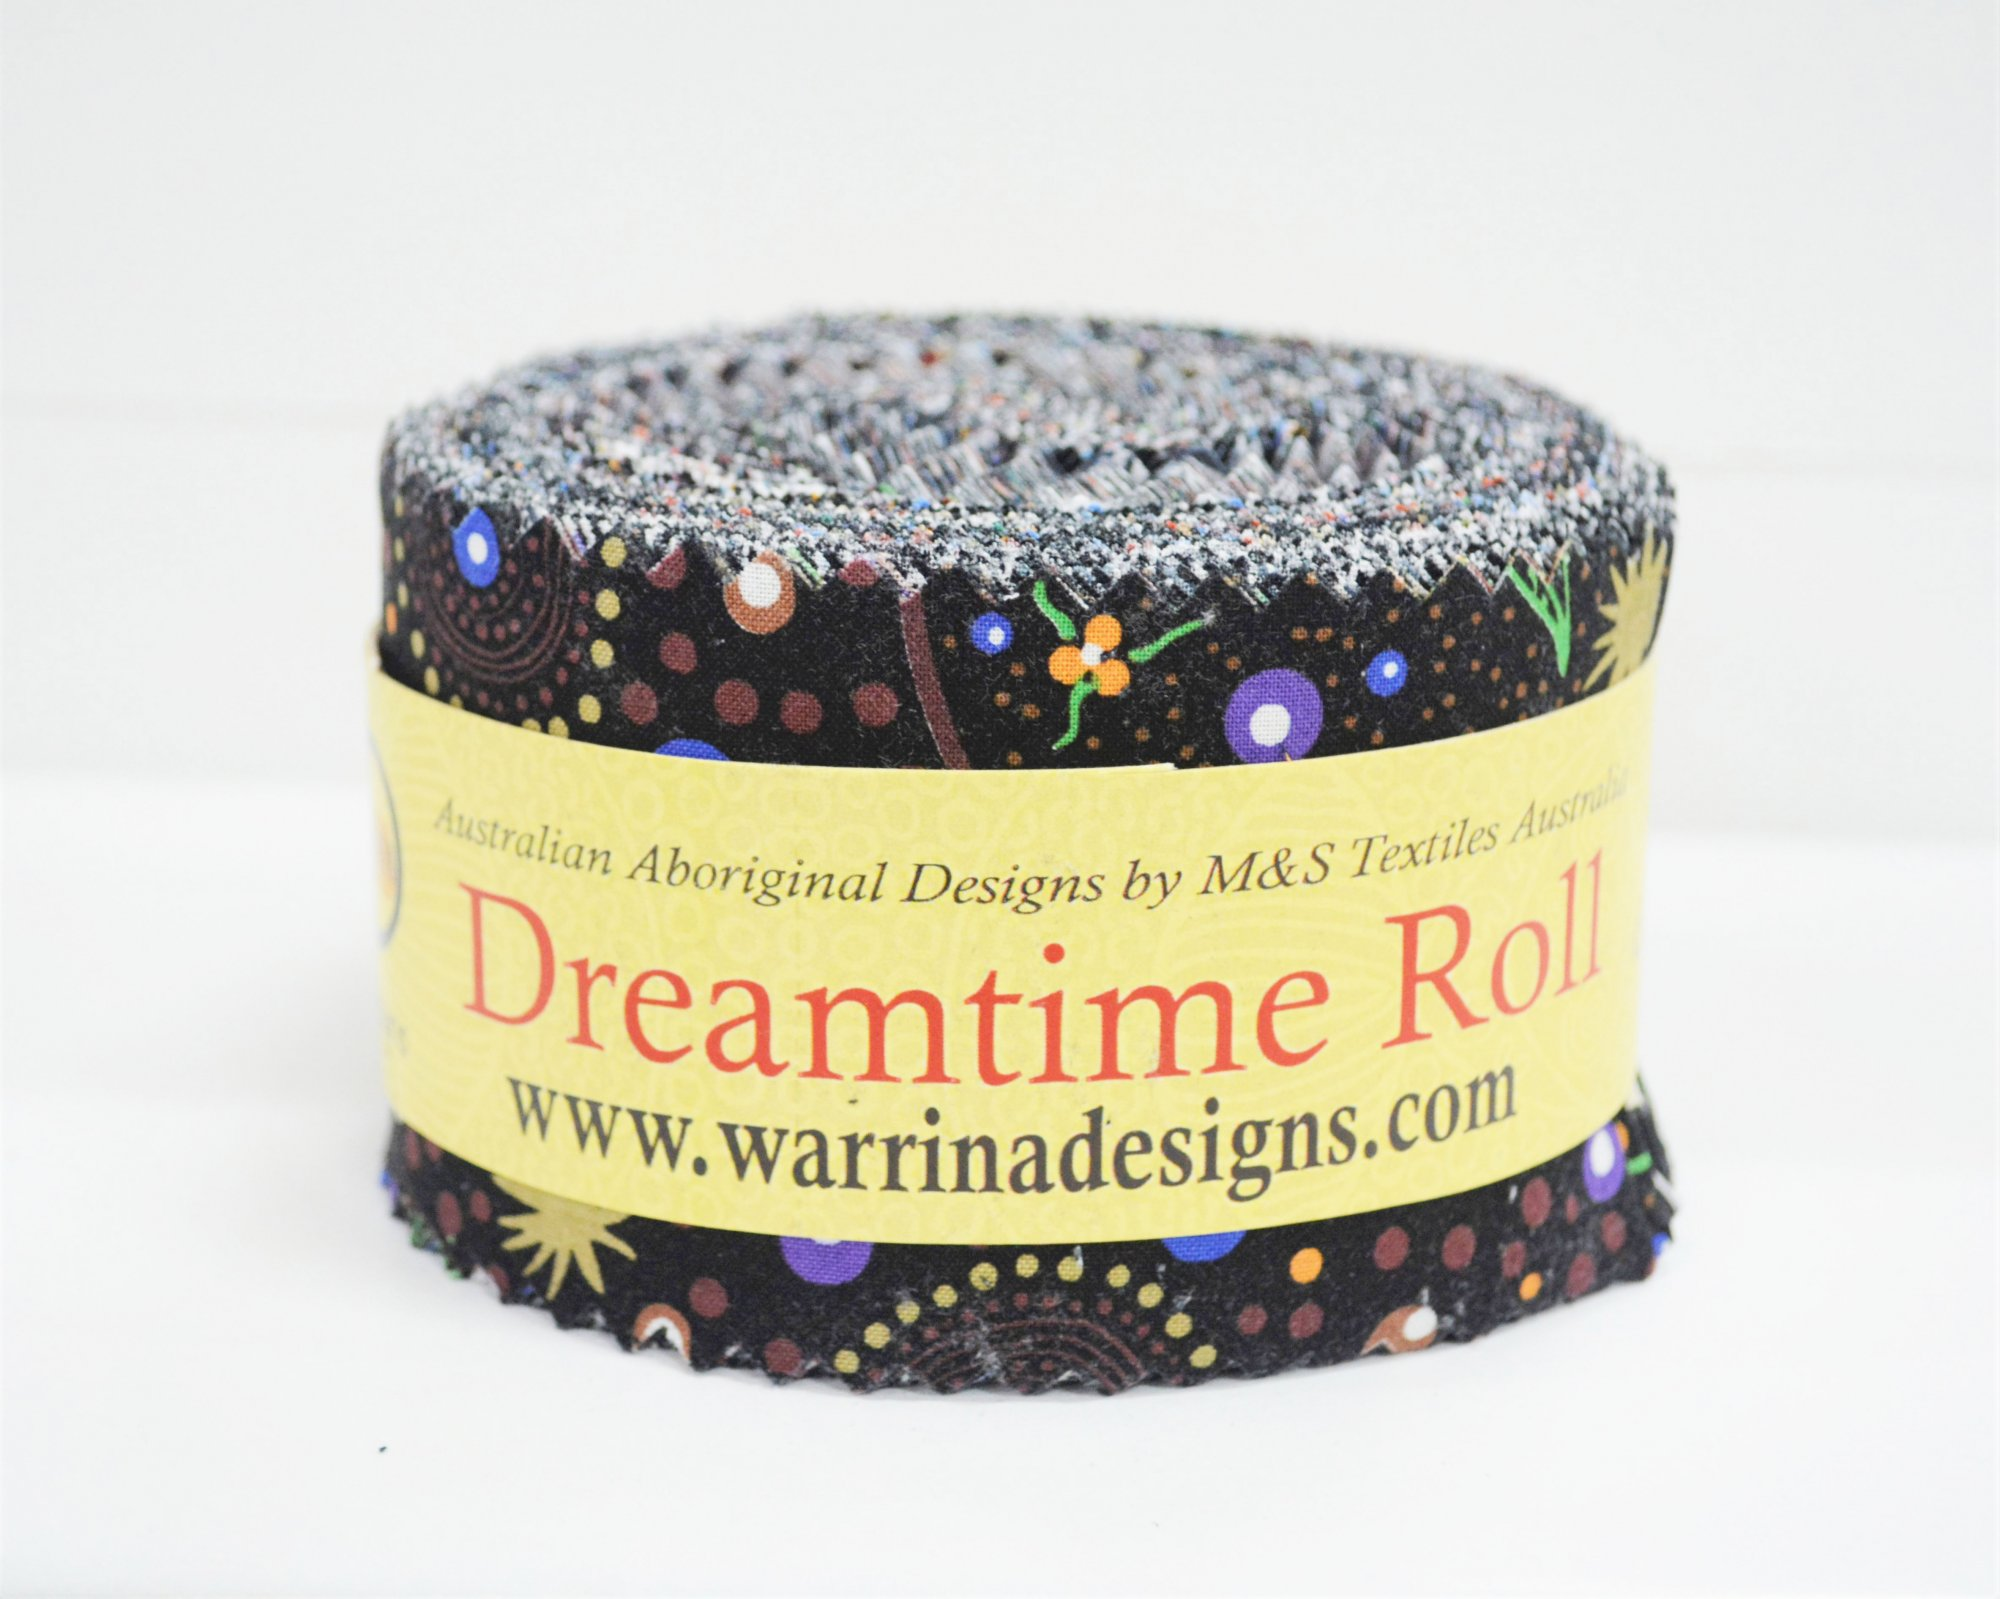 Dreamtime Rolls 40 Per Black